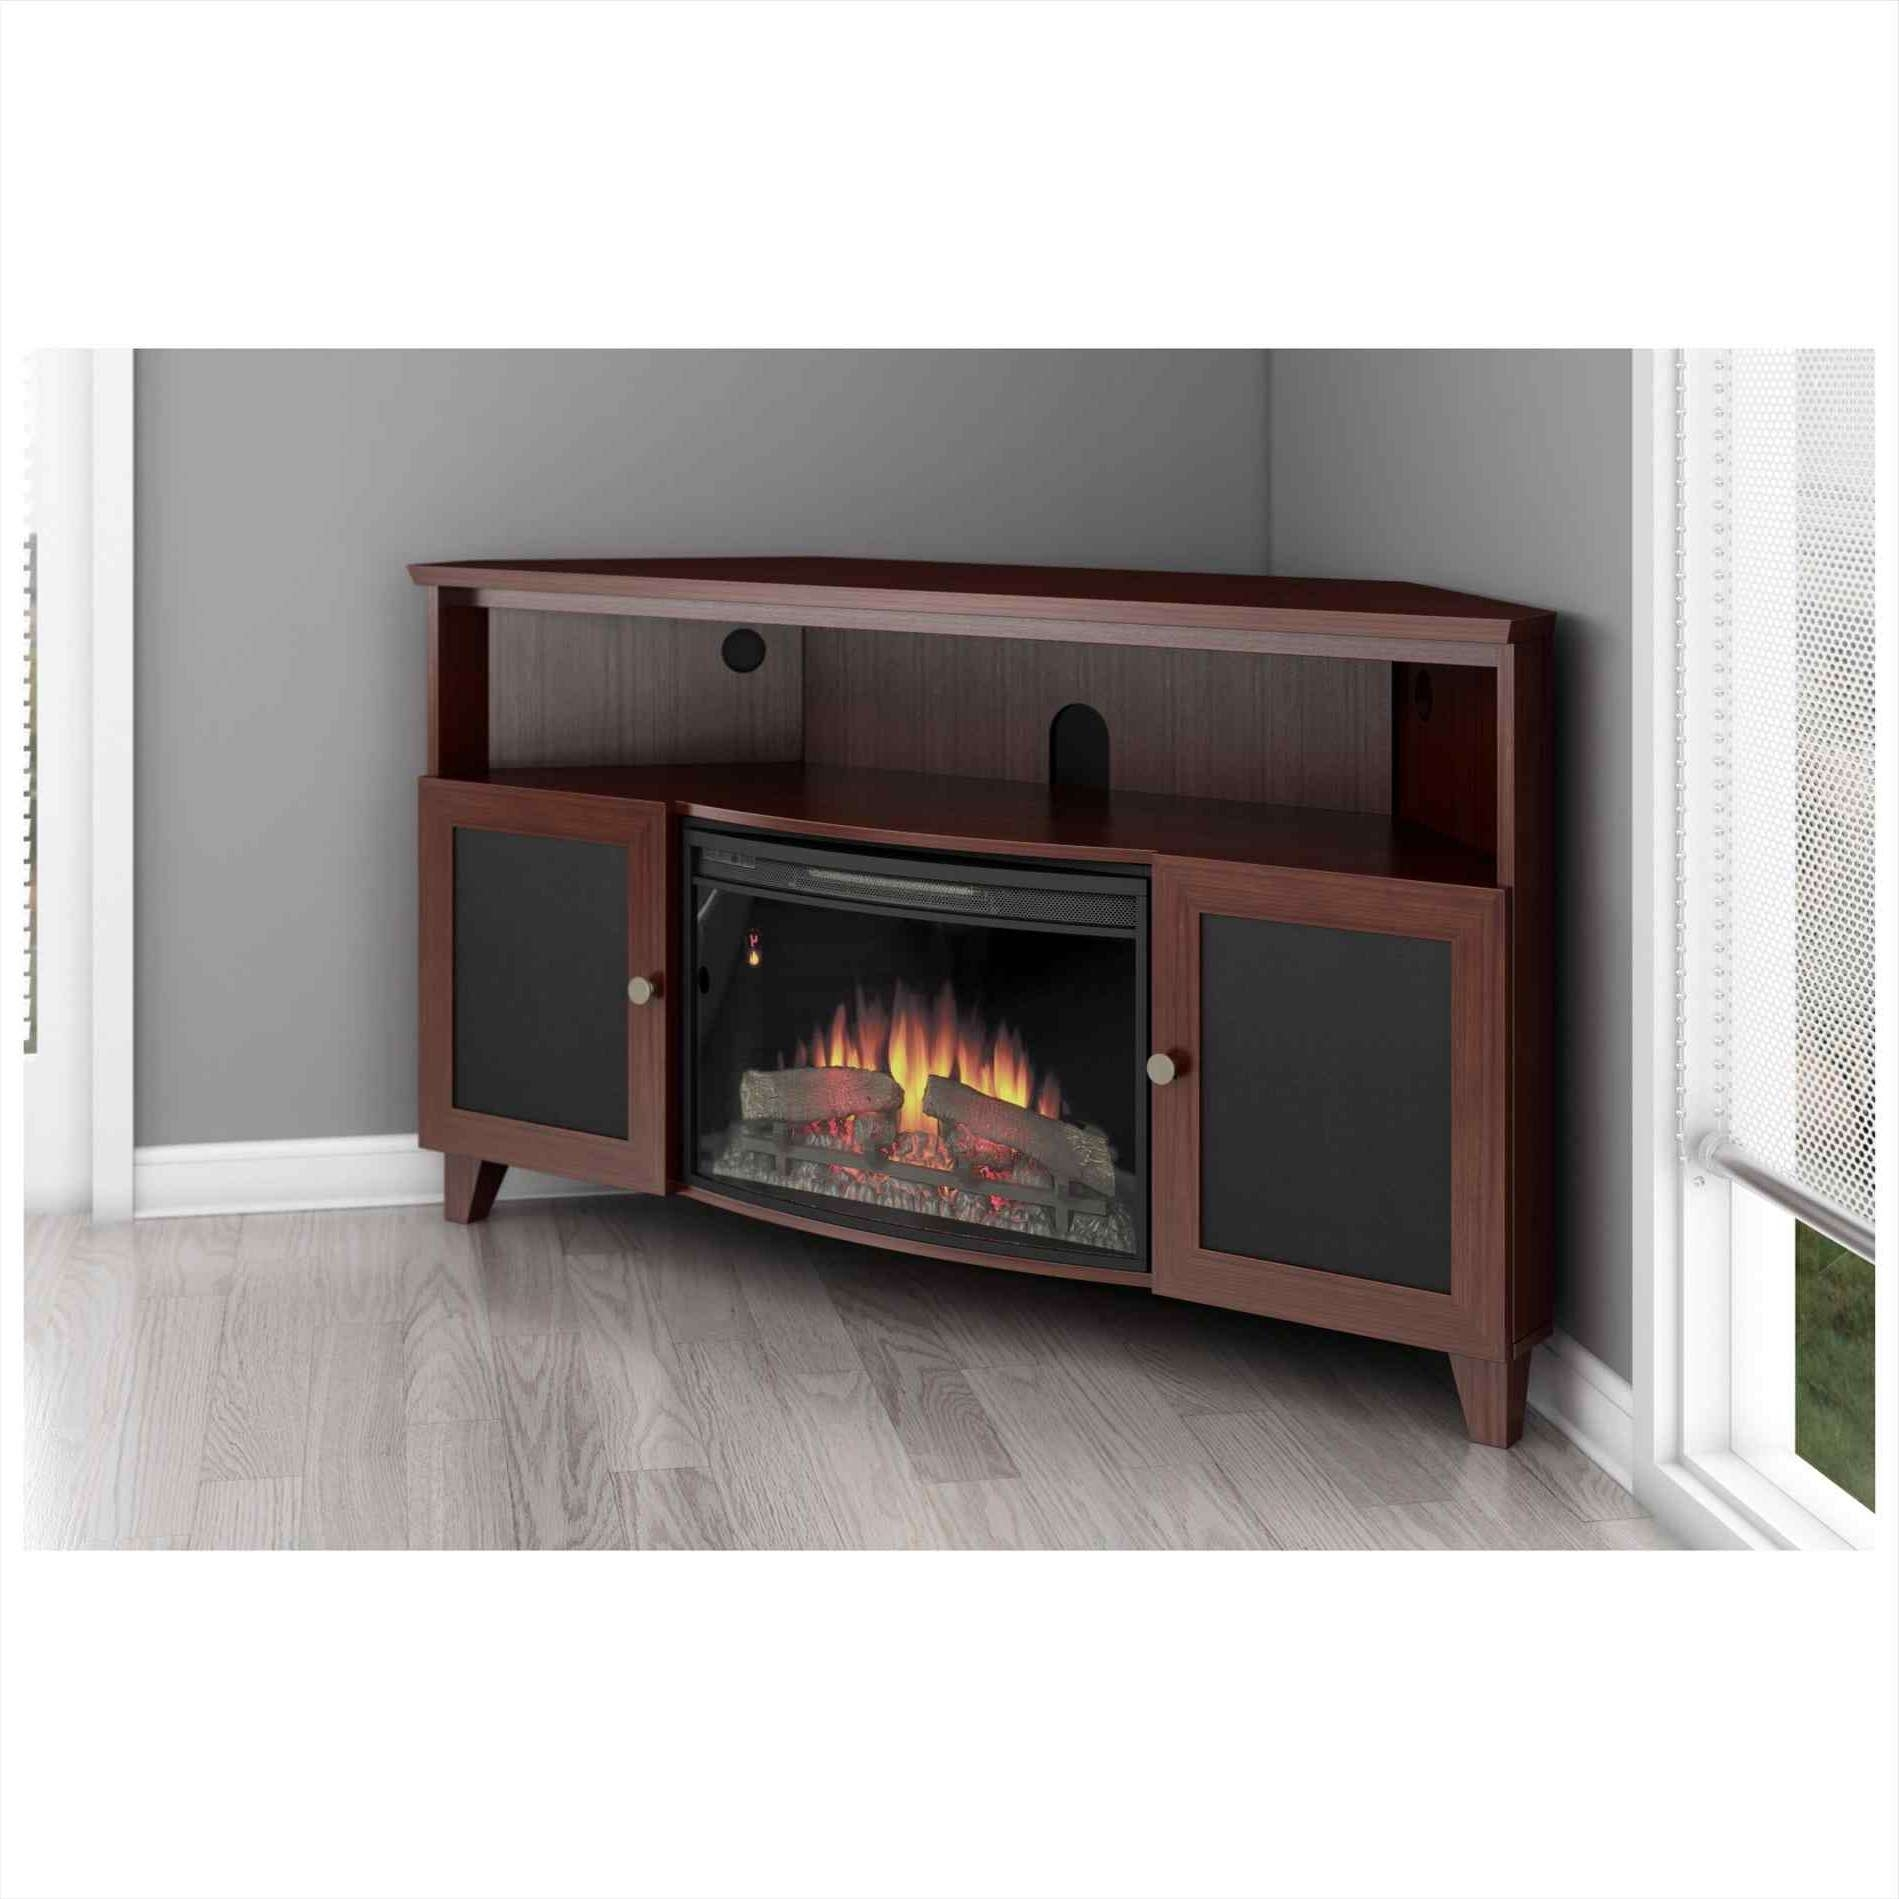 Corner Fireplace Tv Stand For 60 Inch Tv | Wpyninfo Regarding Corner Tv Stands For 60 Inch Tv (View 13 of 15)